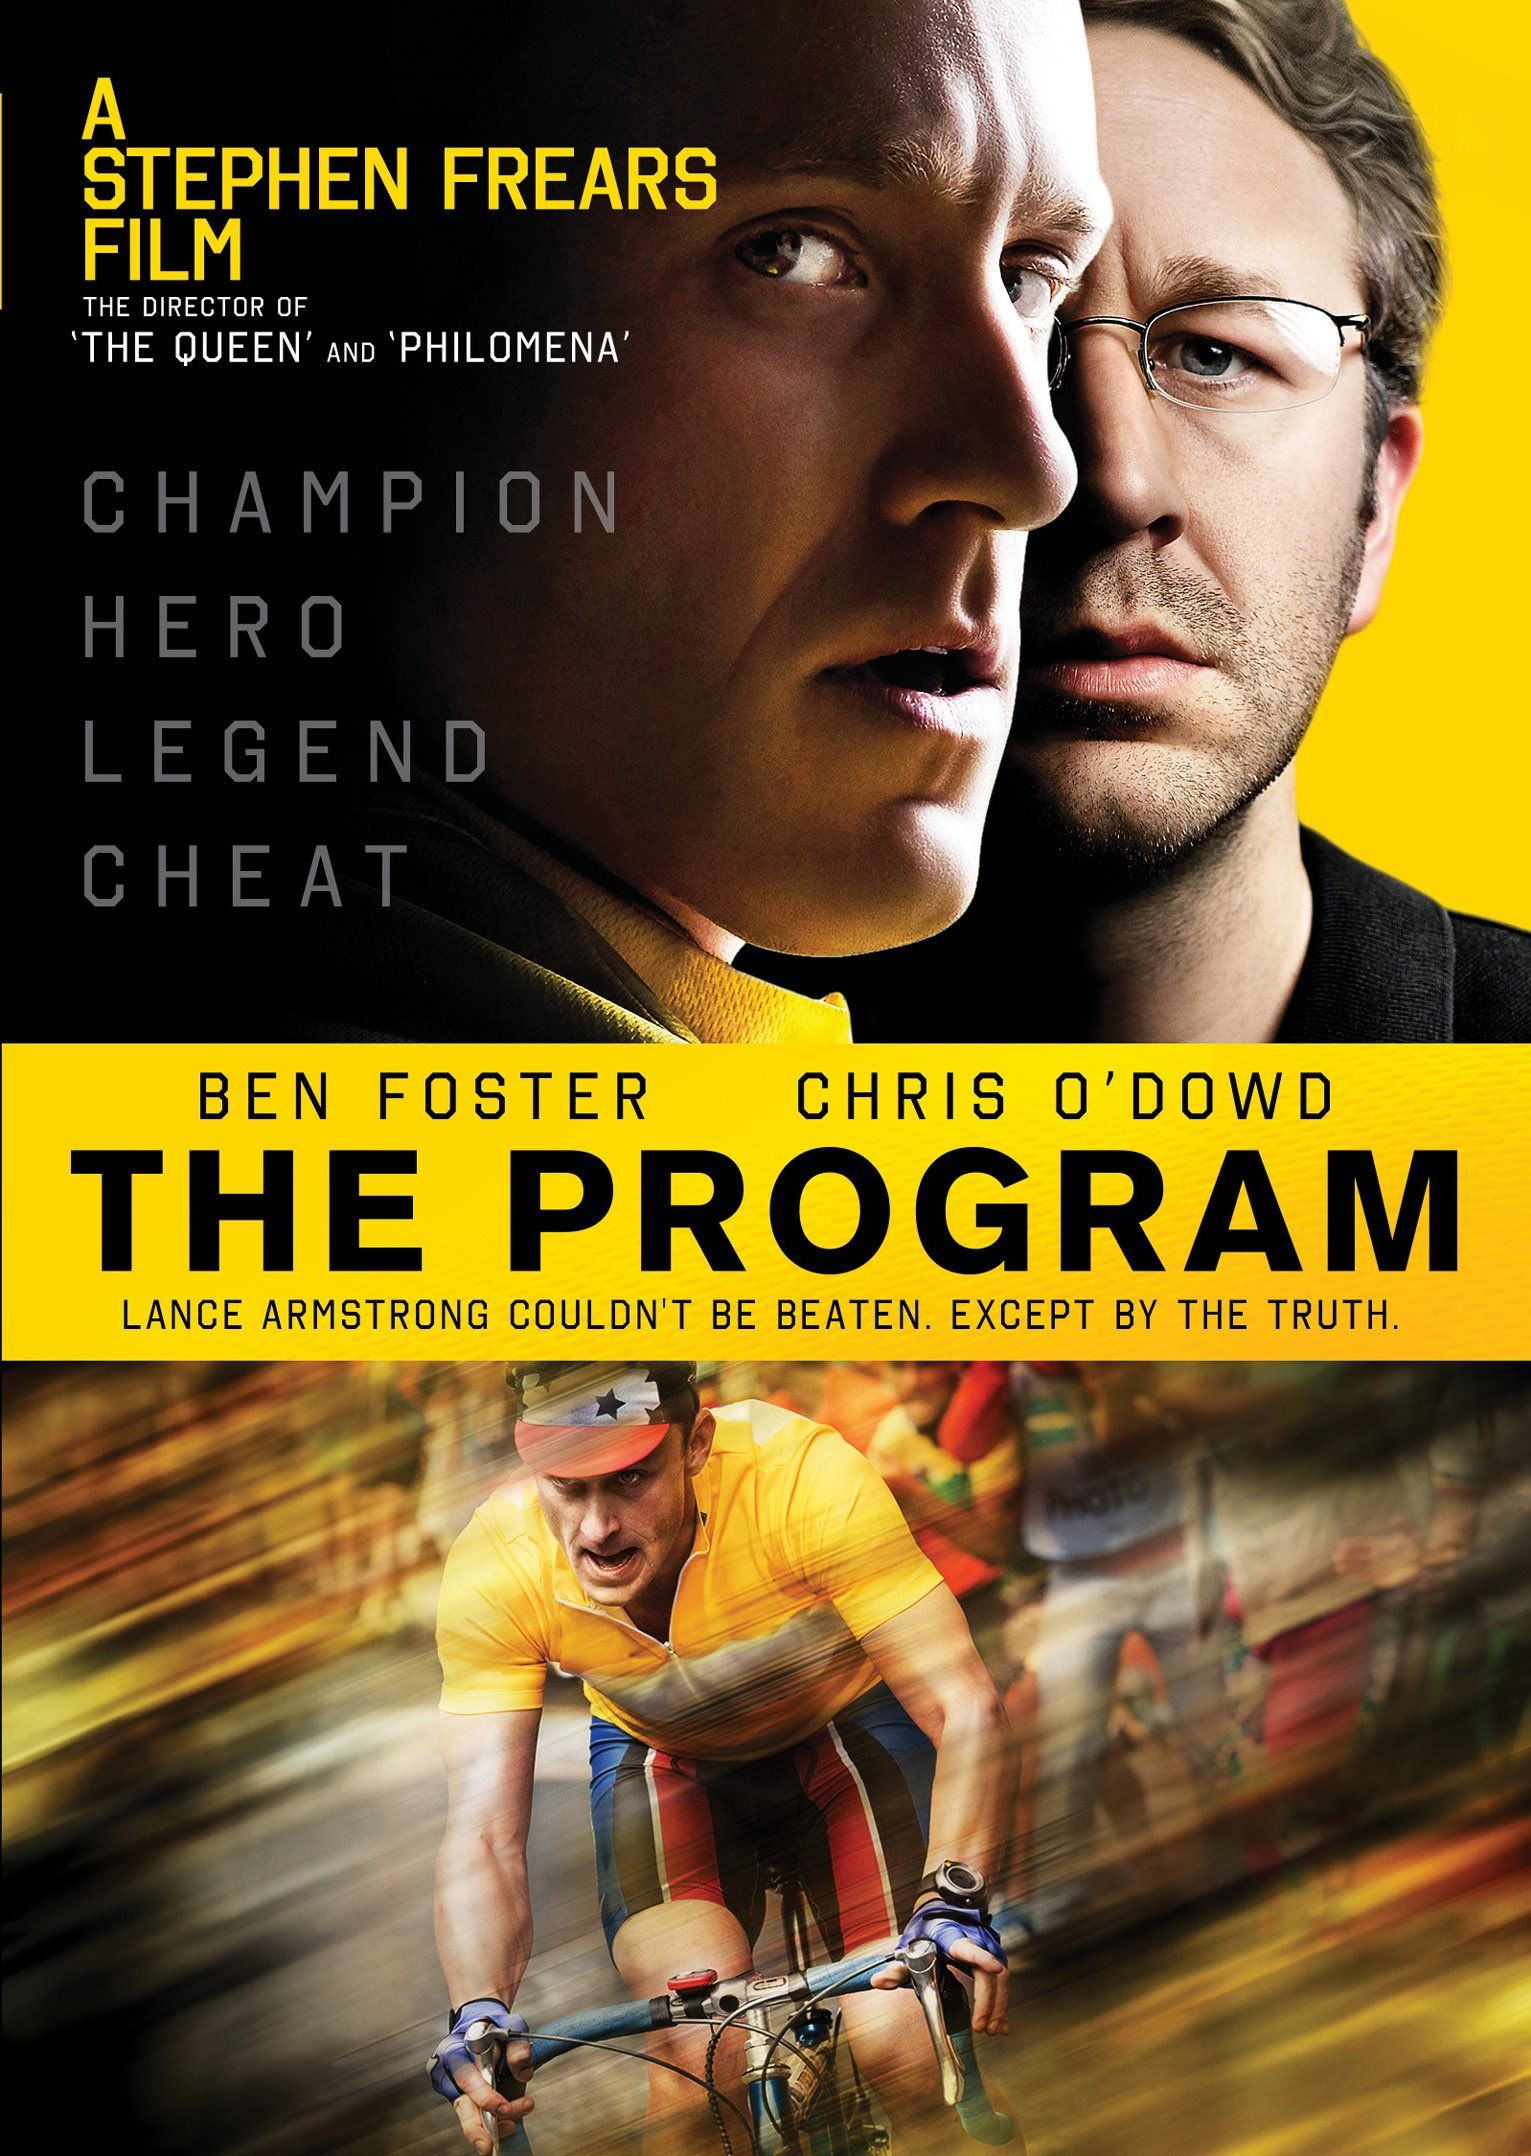 The Program (2015) The fosters, Chris o'dowd, Dvd